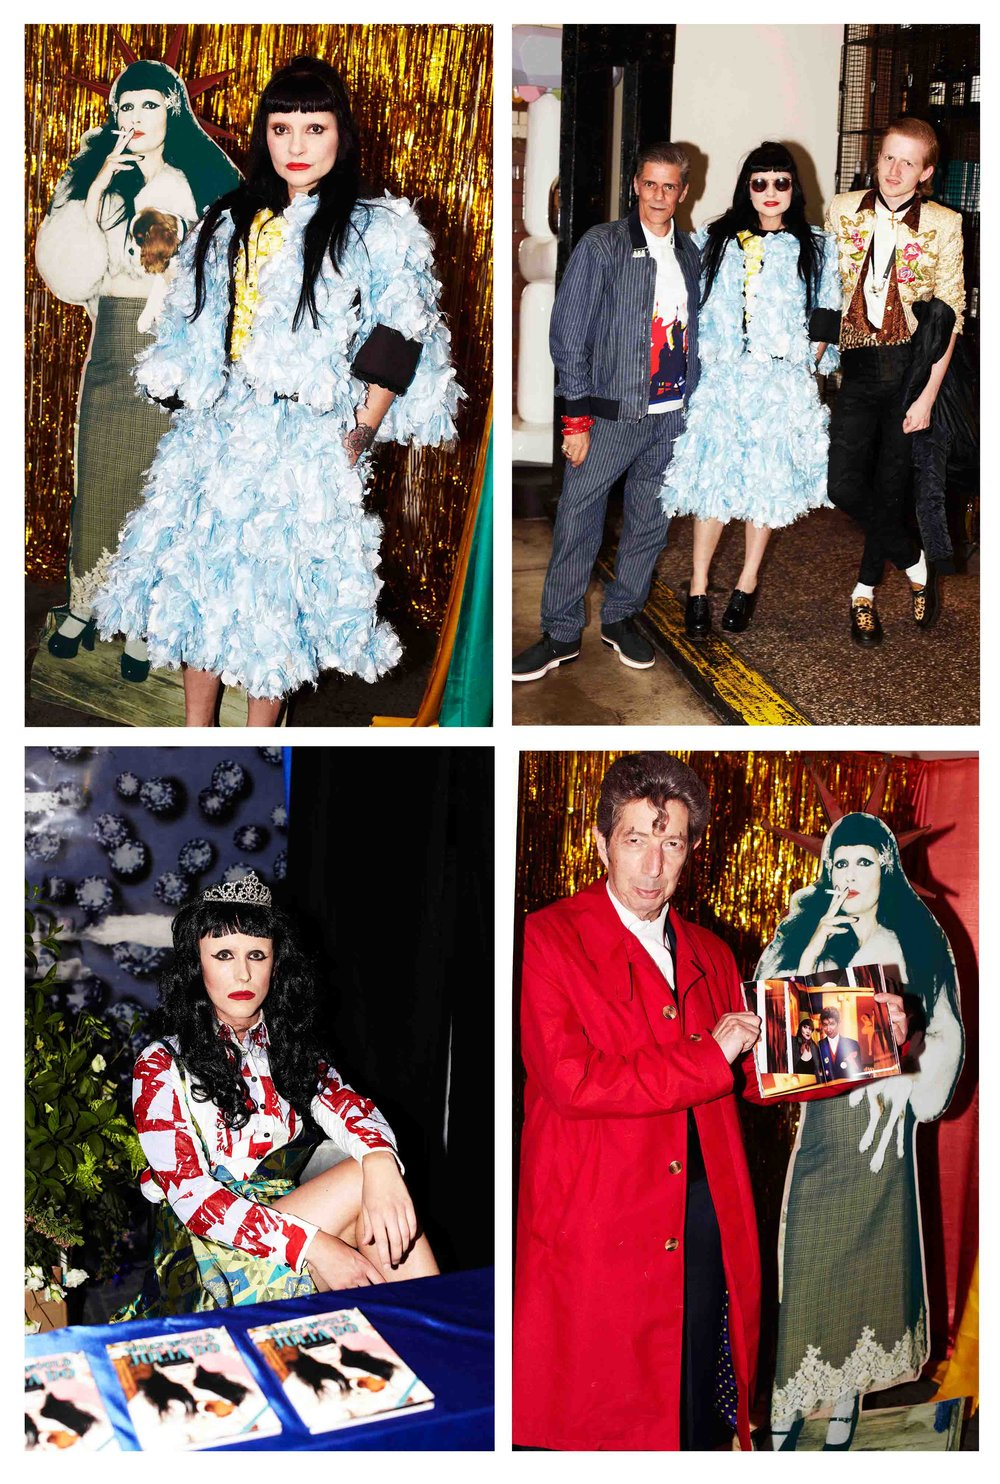 Launch Event  Julia with Cut Out; Julia with designers Ed Marler and Judy Blame; Artist Duggie Fields; Performer dressed as Princess Julia